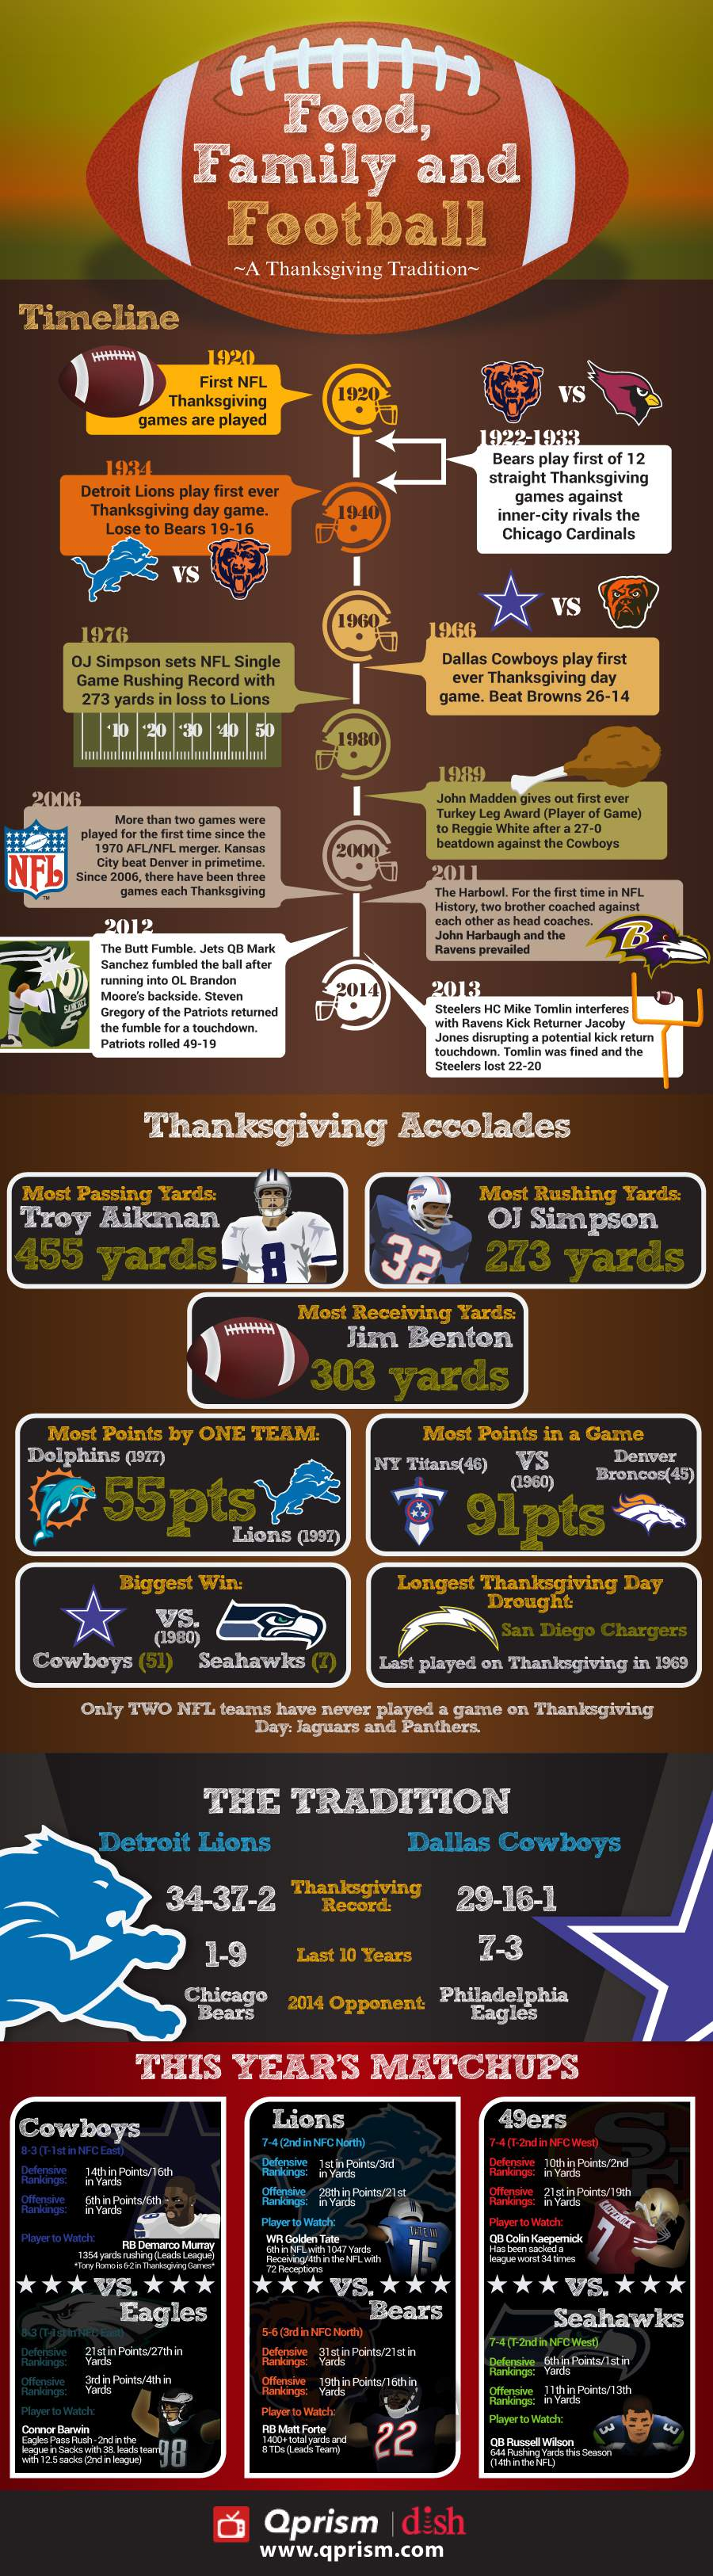 909NFLThanksgiving